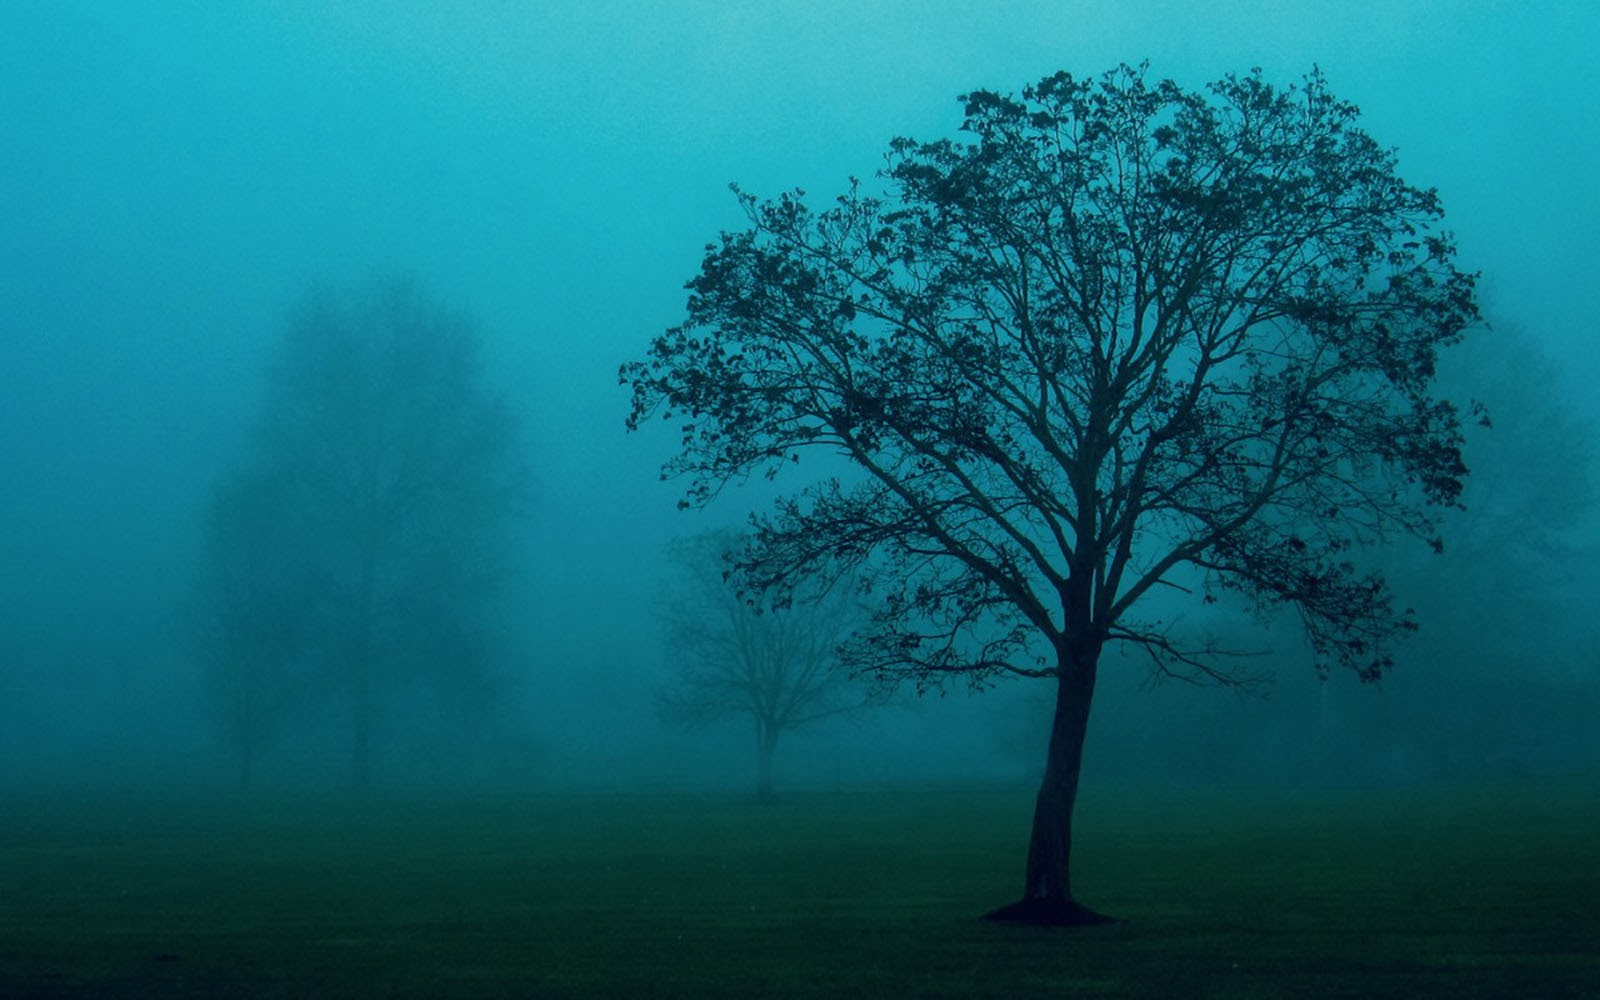 trees in the mist wallpaper